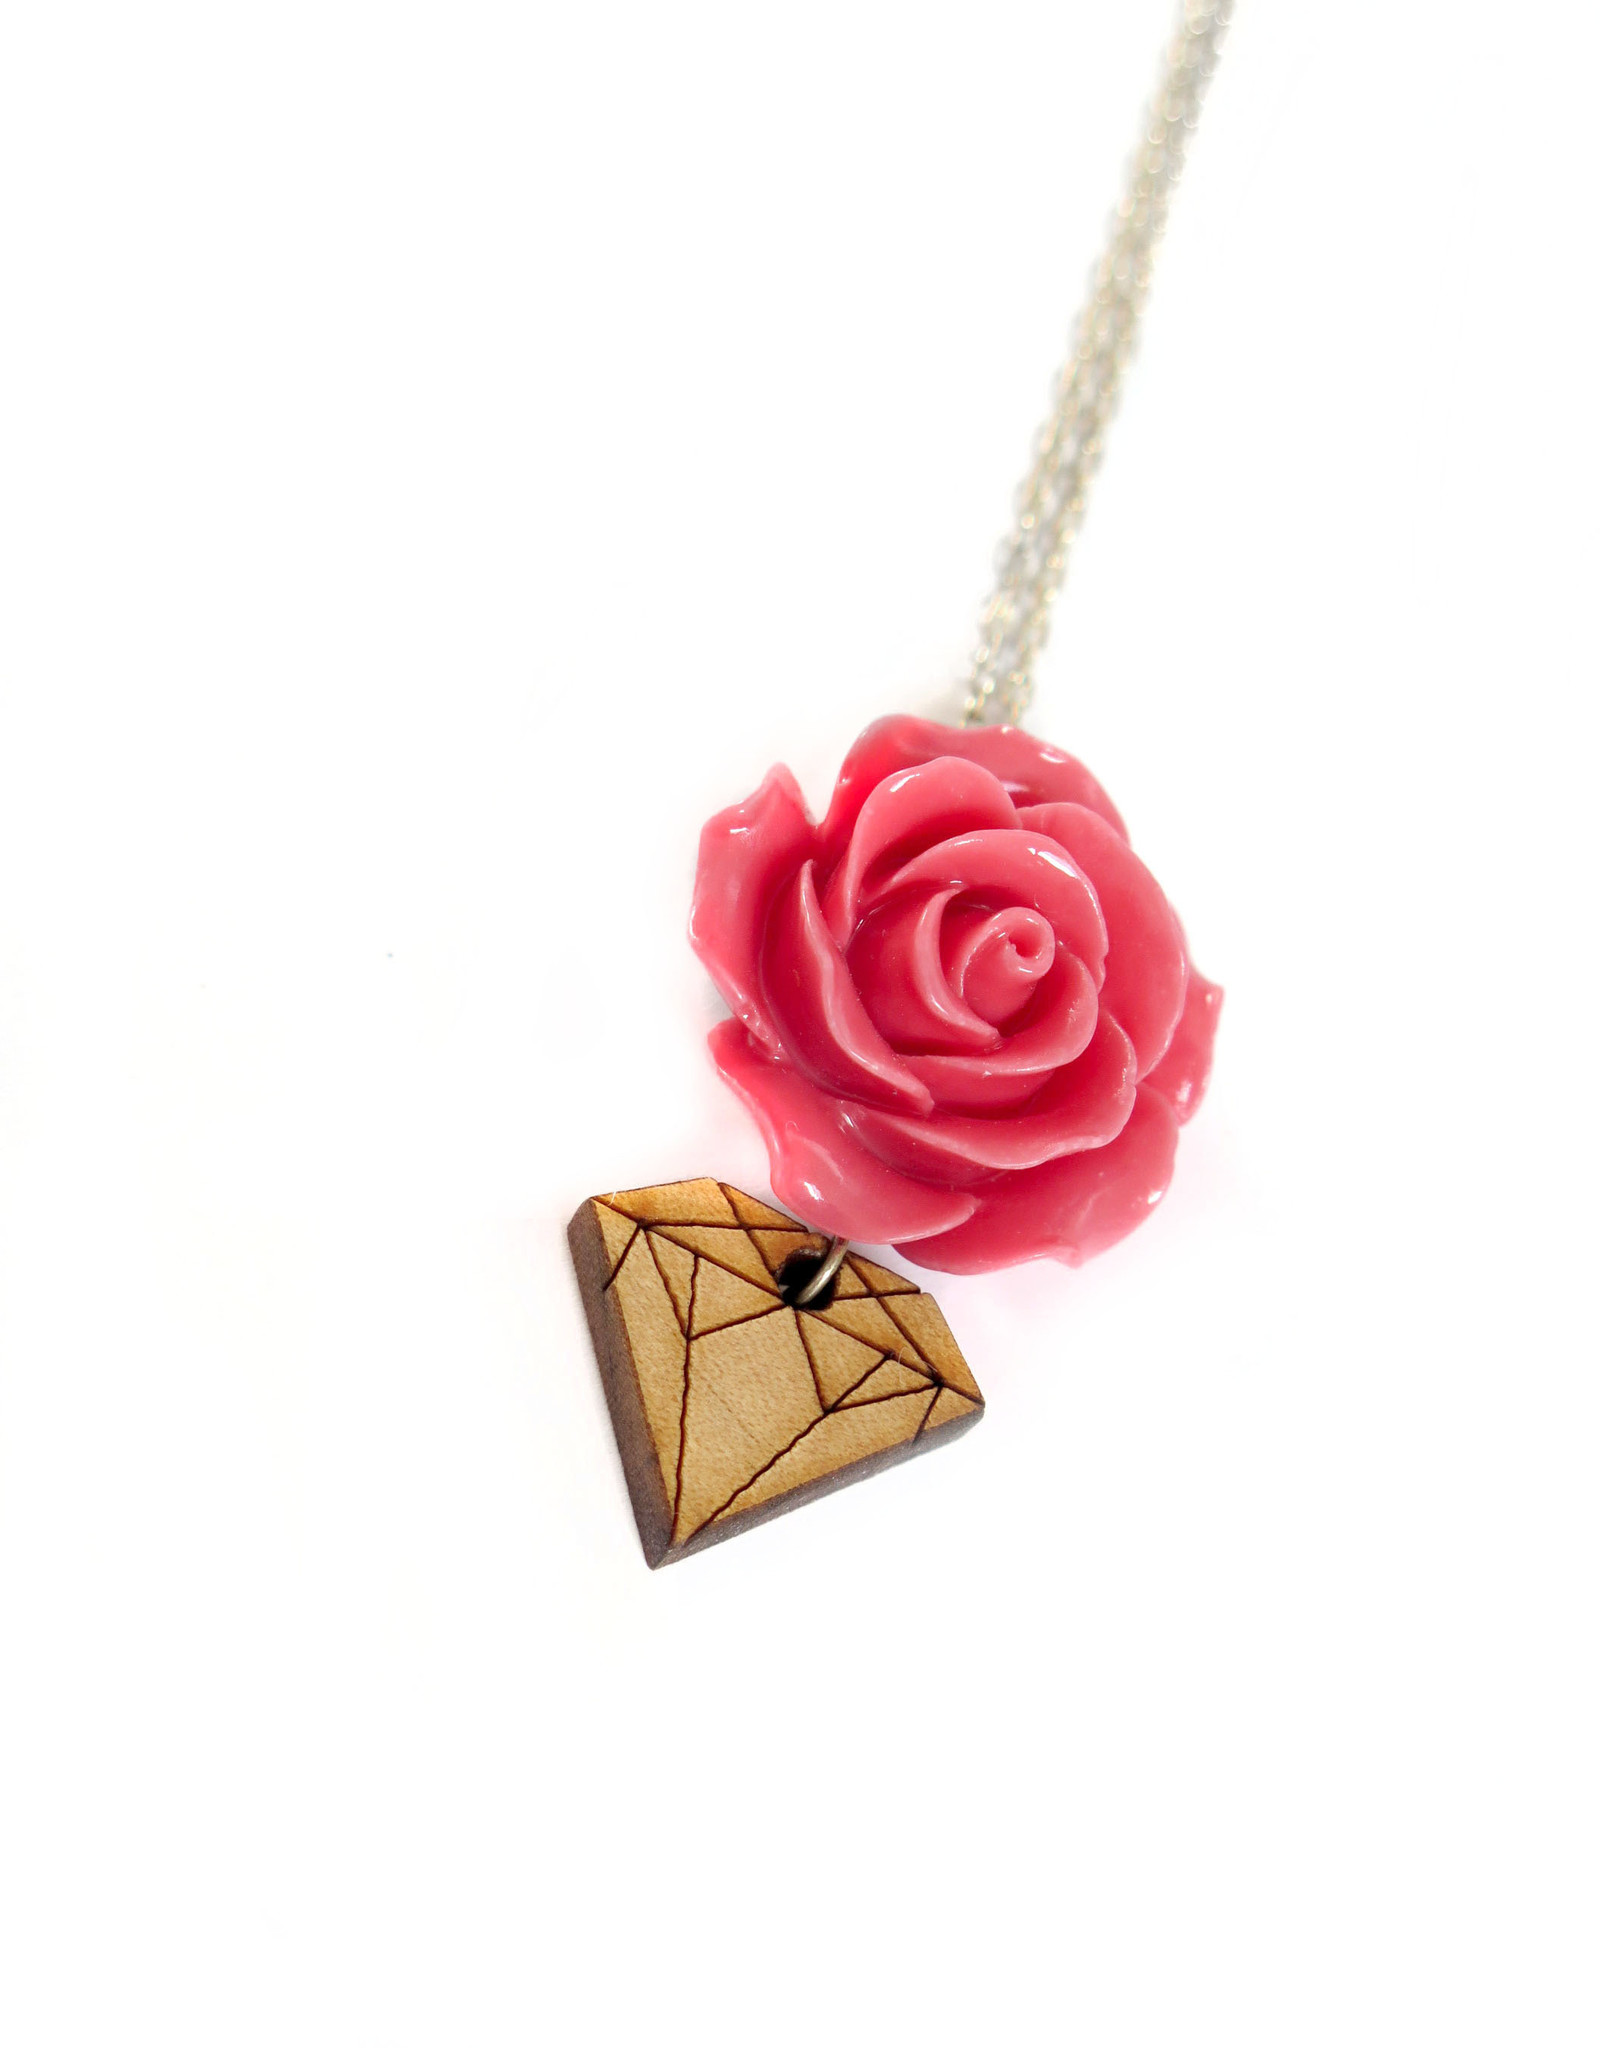 Rose and Wood Diamond Necklace, Dana Diederich